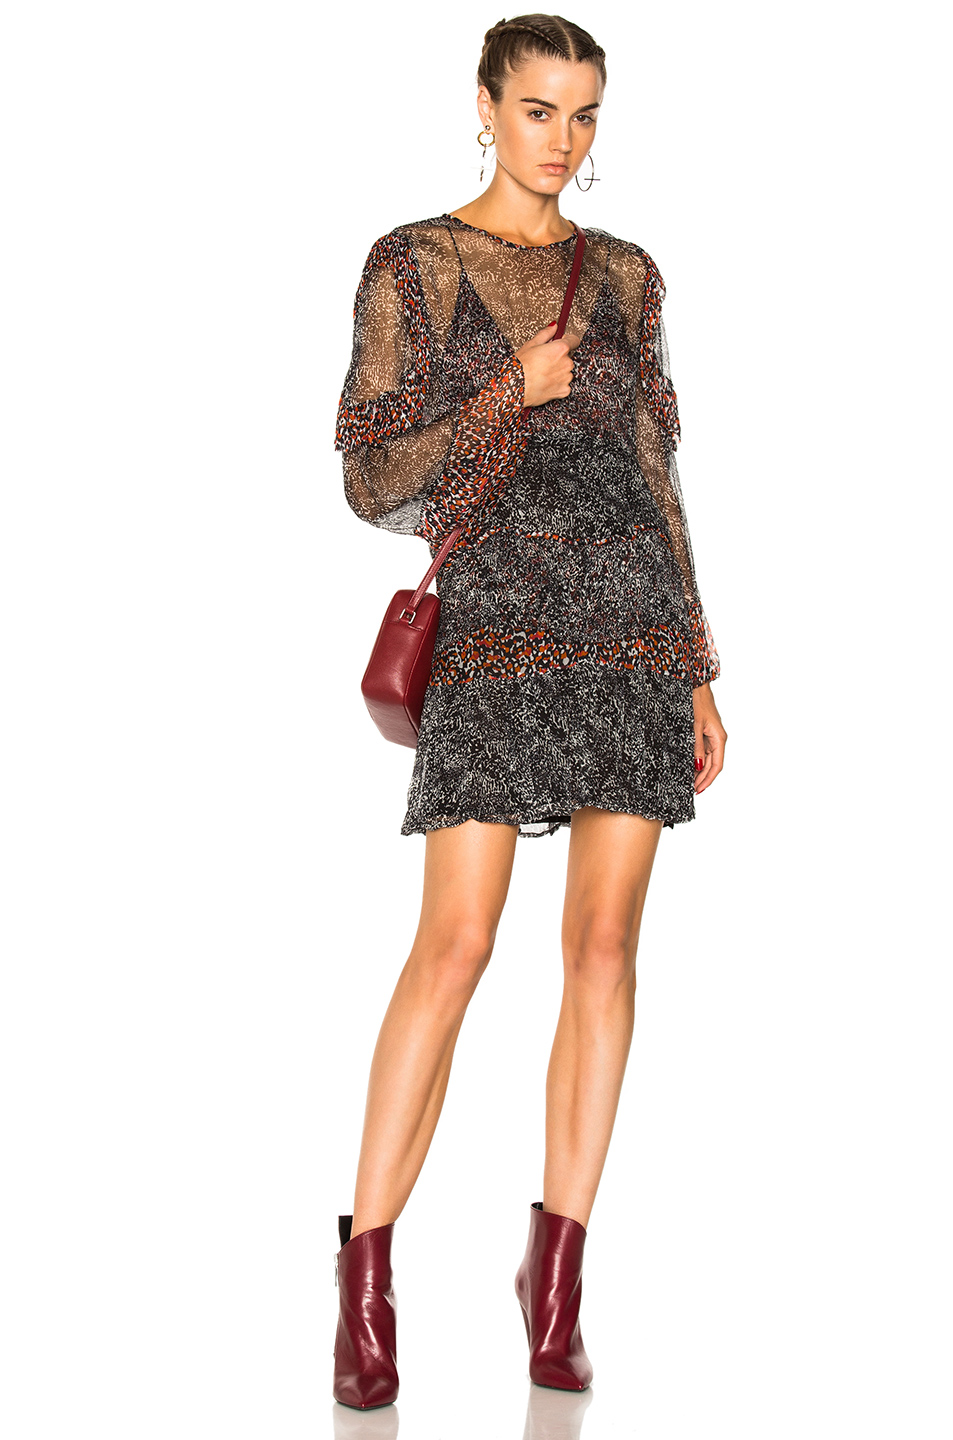 IRO Trillie Dress in Animal Print,Black,Red